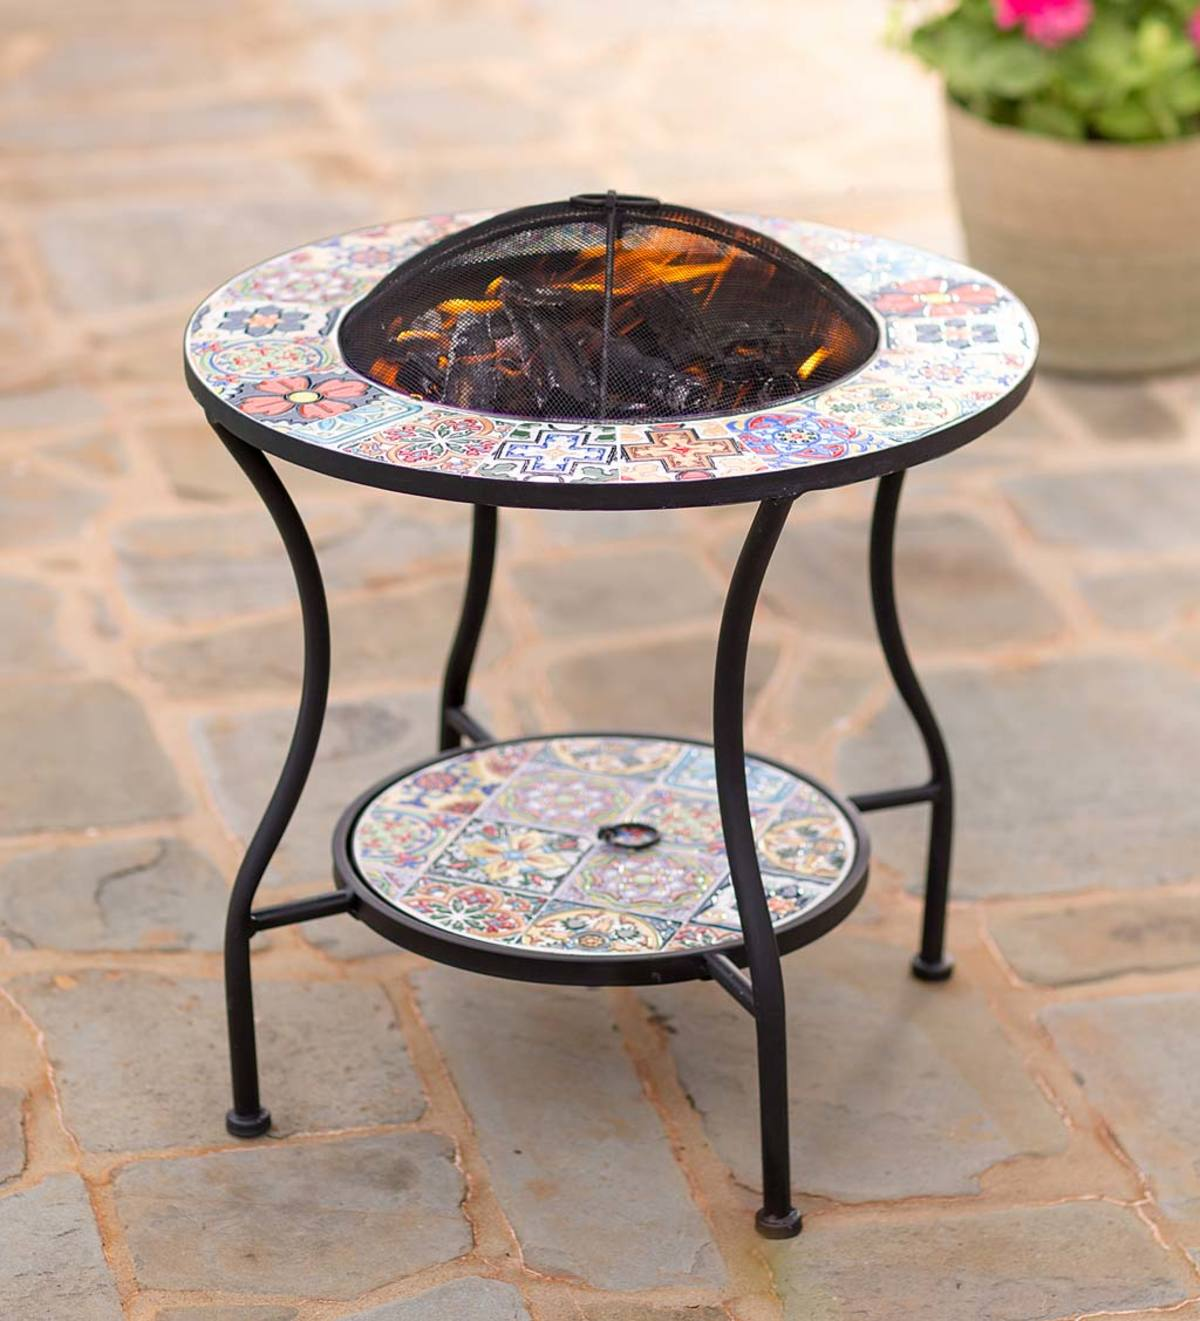 Mosaic Tile Convertible Fire Pit Side Table Wind And Weather